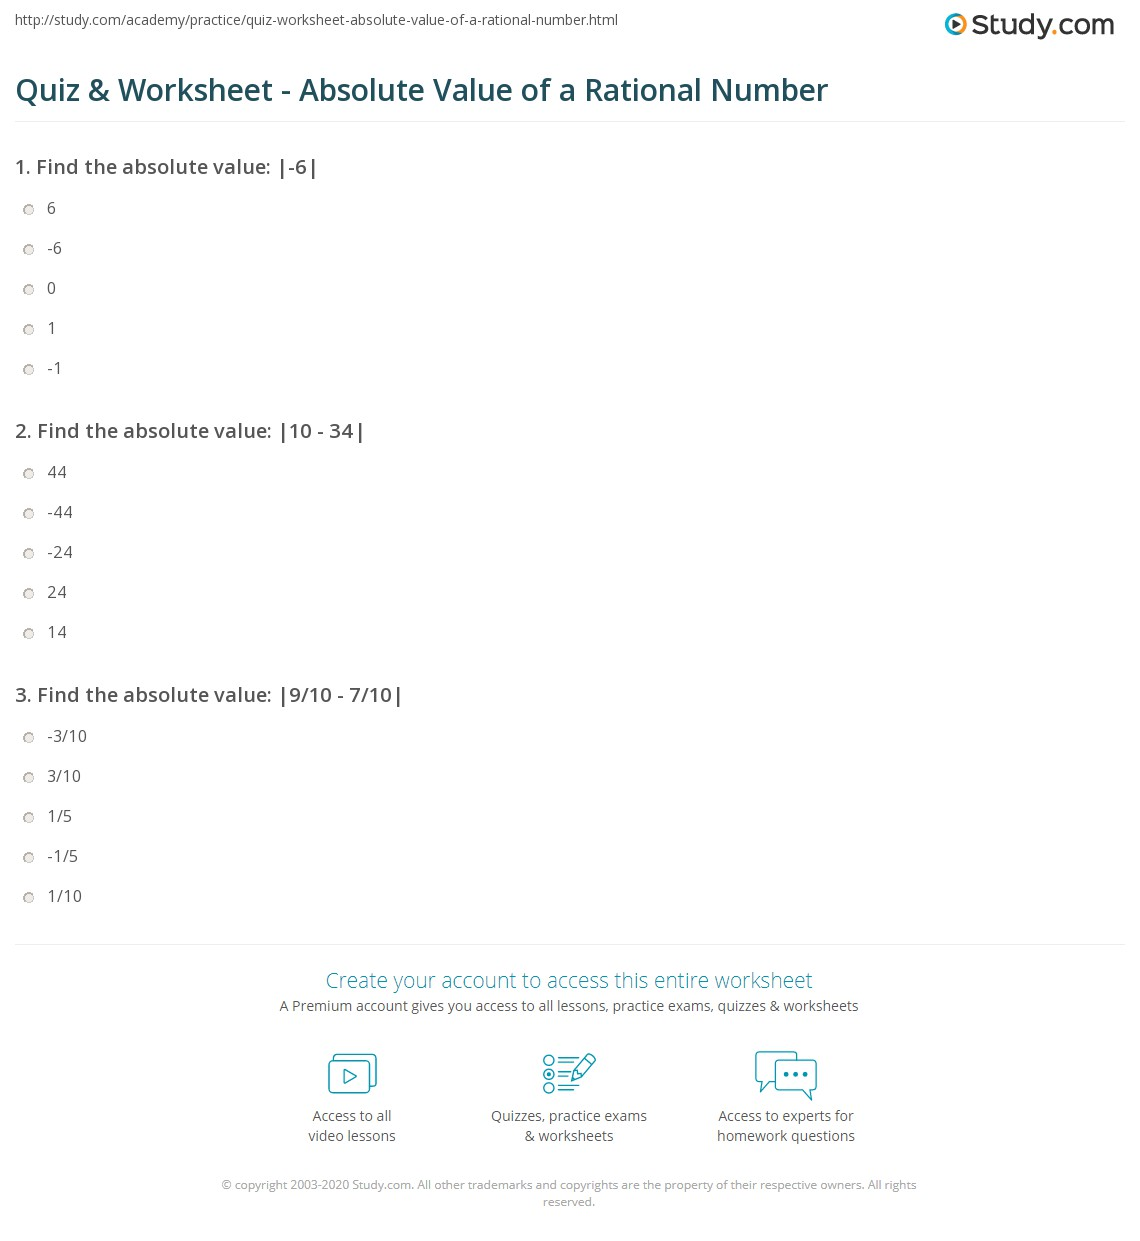 Quiz Worksheet Absolute Value Of A Rational Number Study